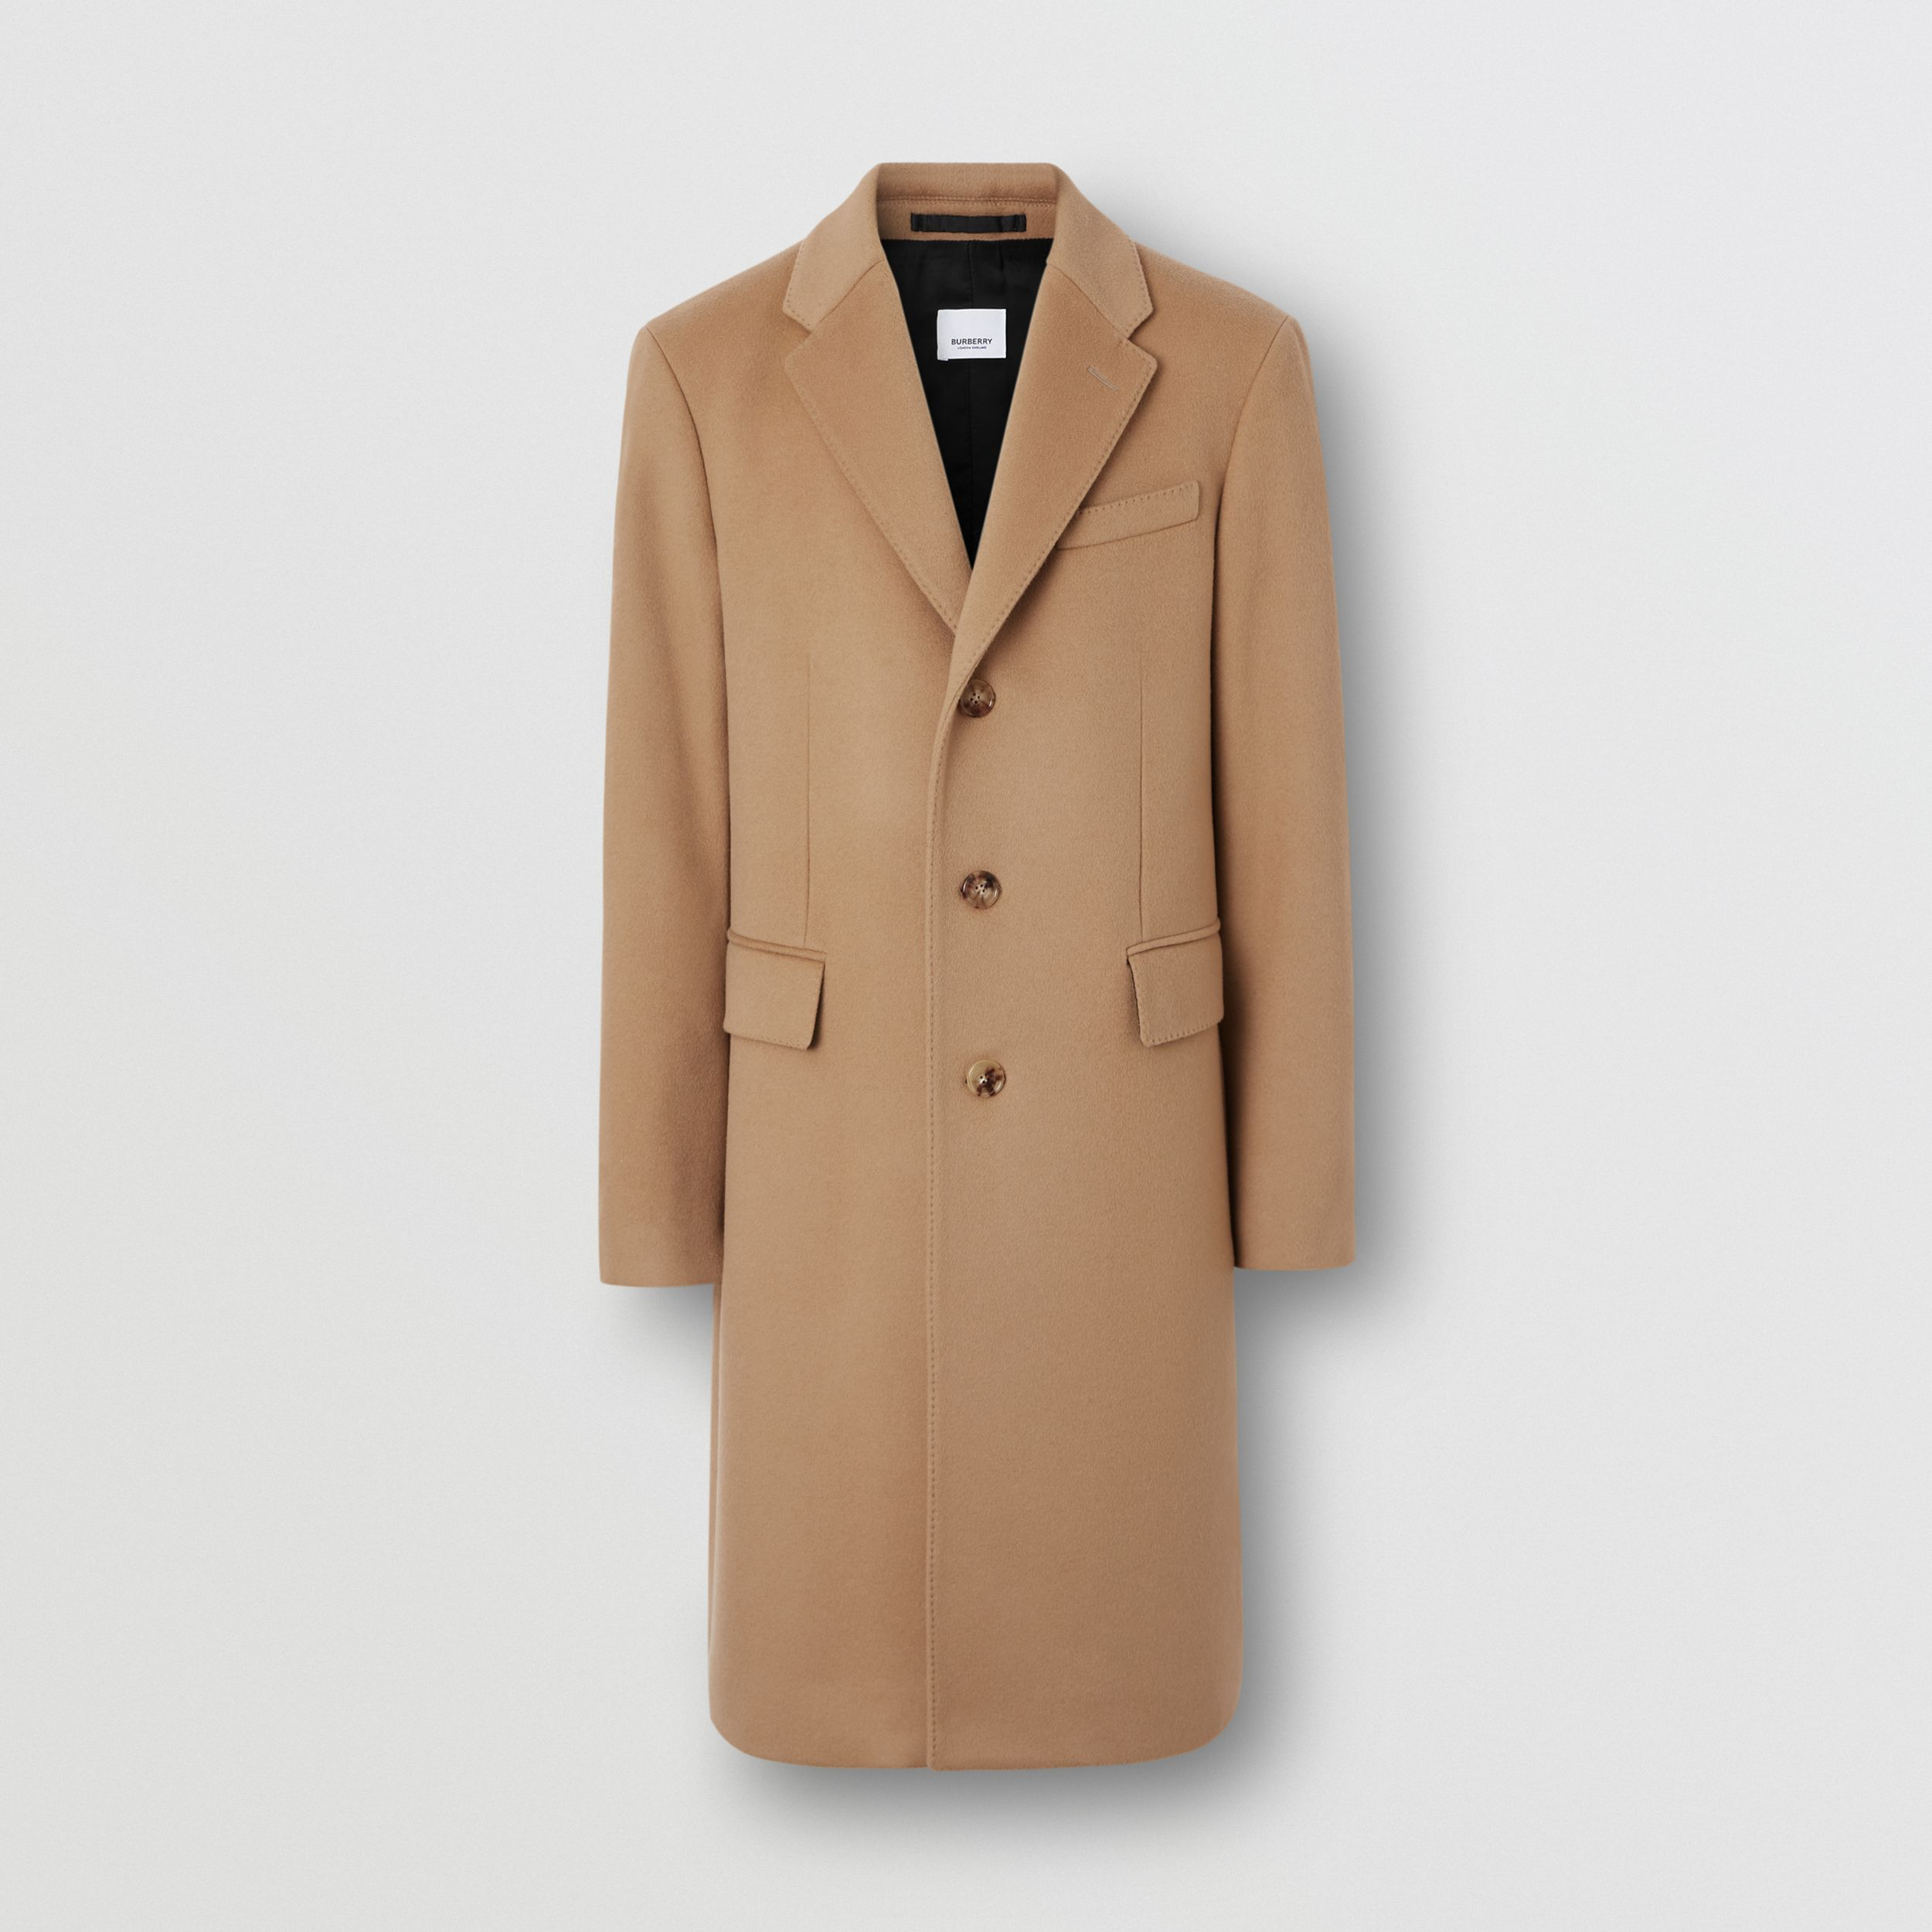 Wool Cashmere Tailored Coat in Camel - Men | Burberry - 4